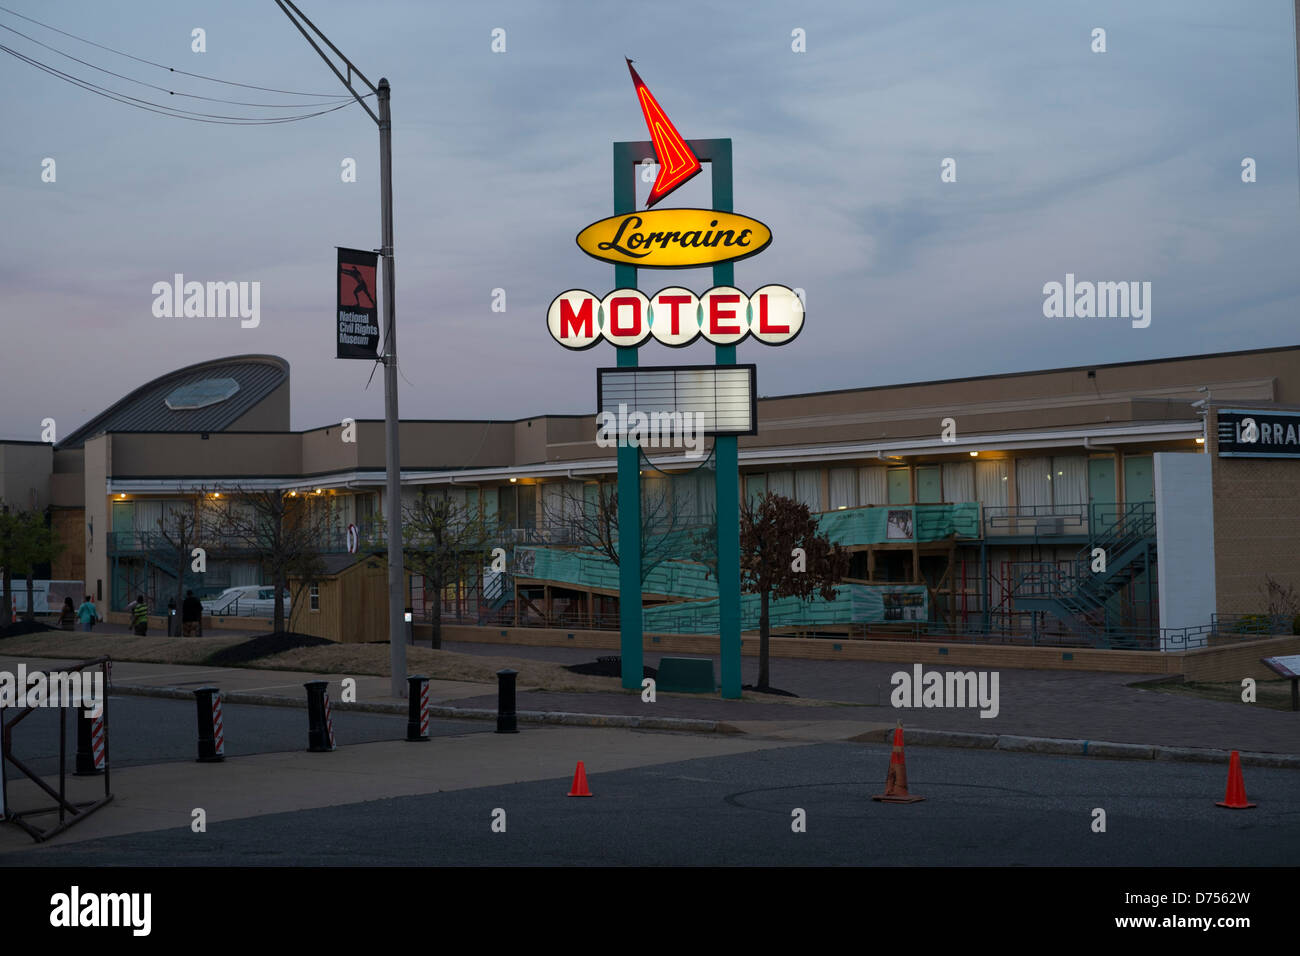 The Lorraine Motel, Memphis, USA where Dr Martin Luther King was killed. - Stock Image